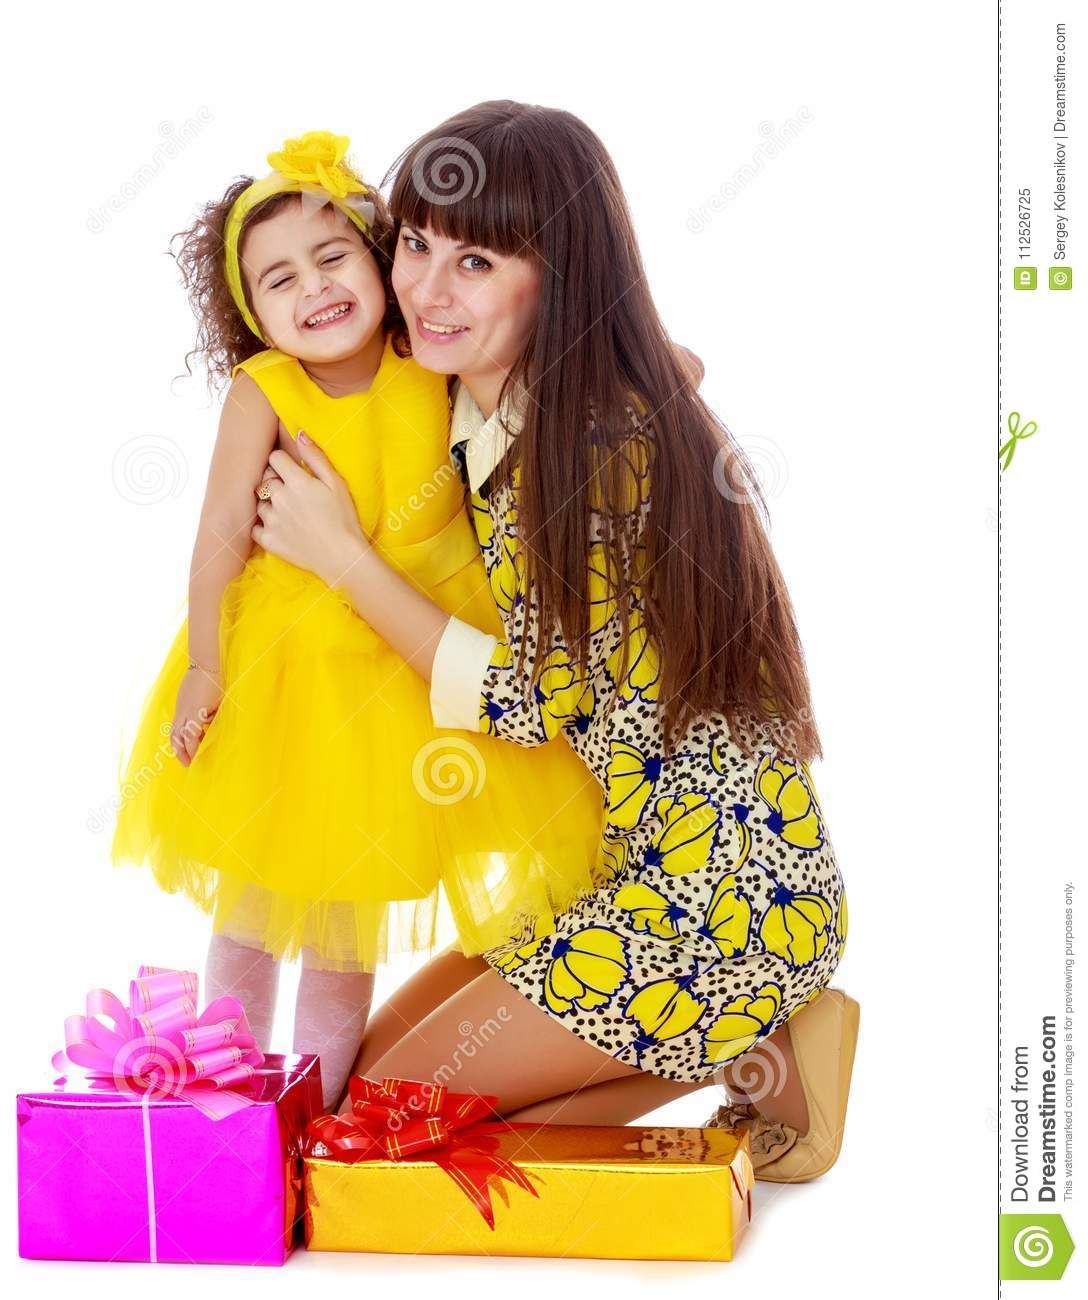 Mom And Daughter With Gifts In The New Year Stock Image - Image of ...